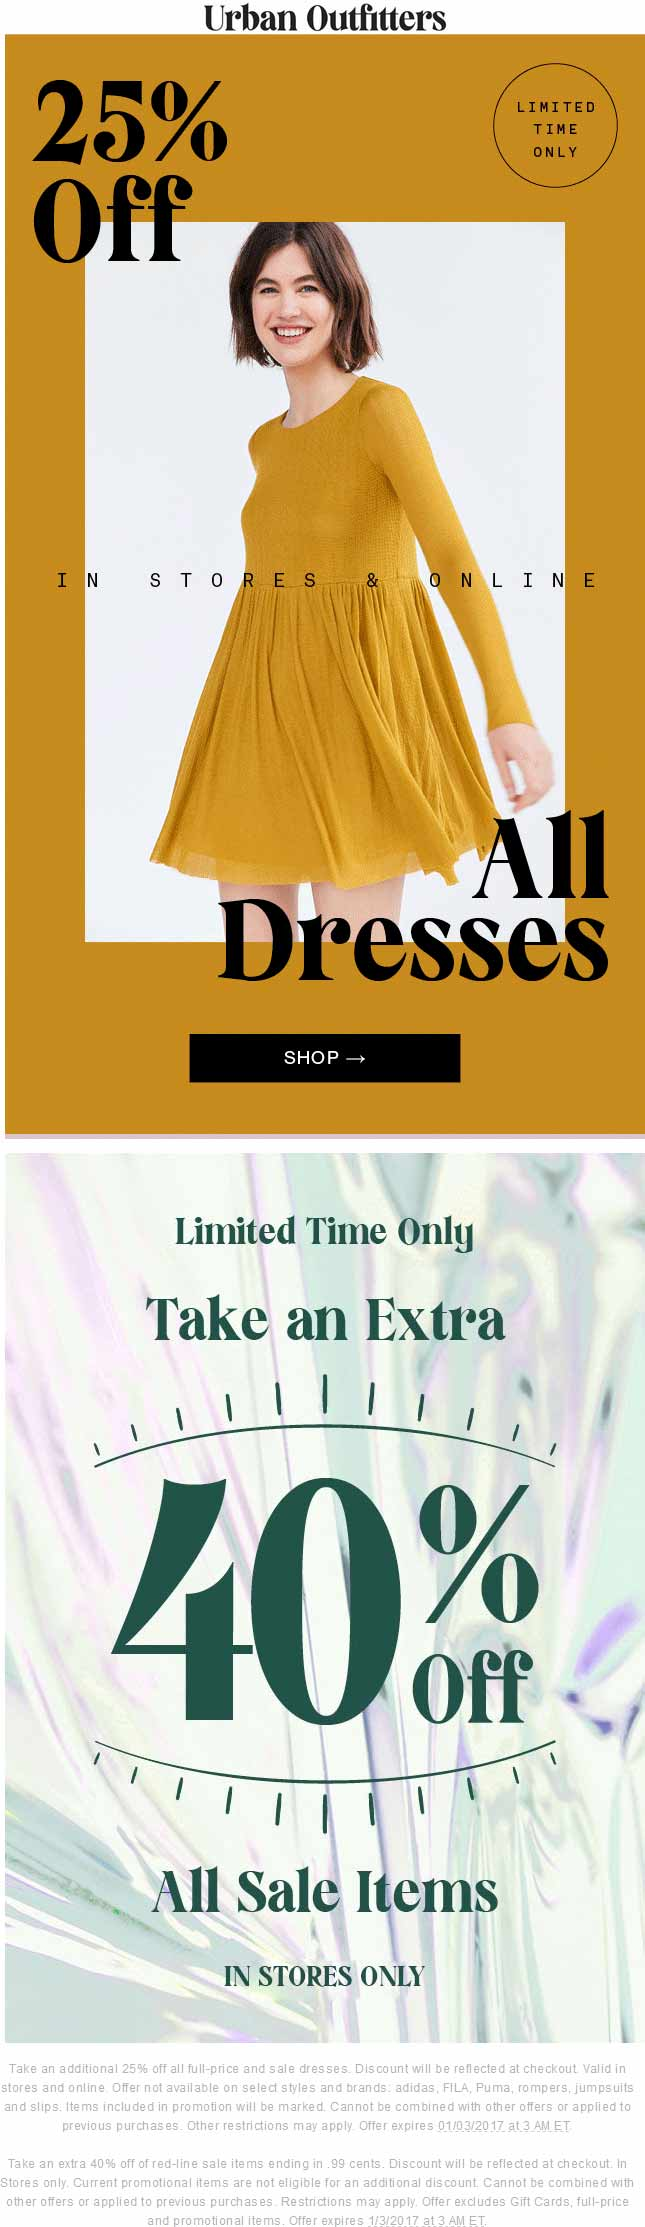 UrbanOutfitters.com Promo Coupon Extra 40% off sale items & more at Urban Outfitters, or 25% off dresses online